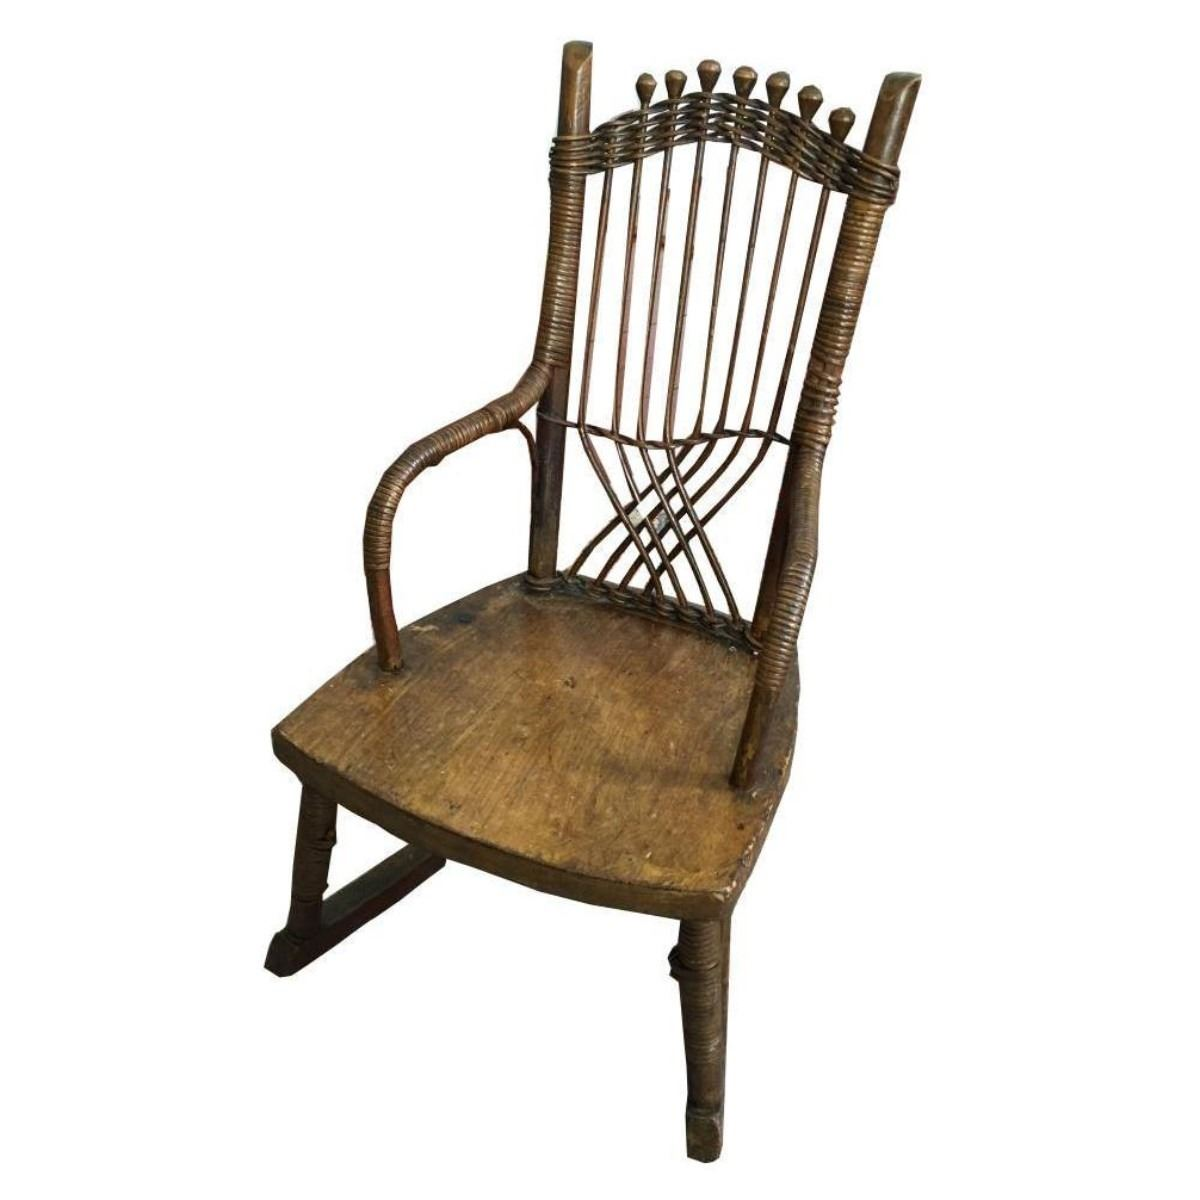 Fantastic 19Thc Primitive Childs Cane Rocking Chair Gmtry Best Dining Table And Chair Ideas Images Gmtryco